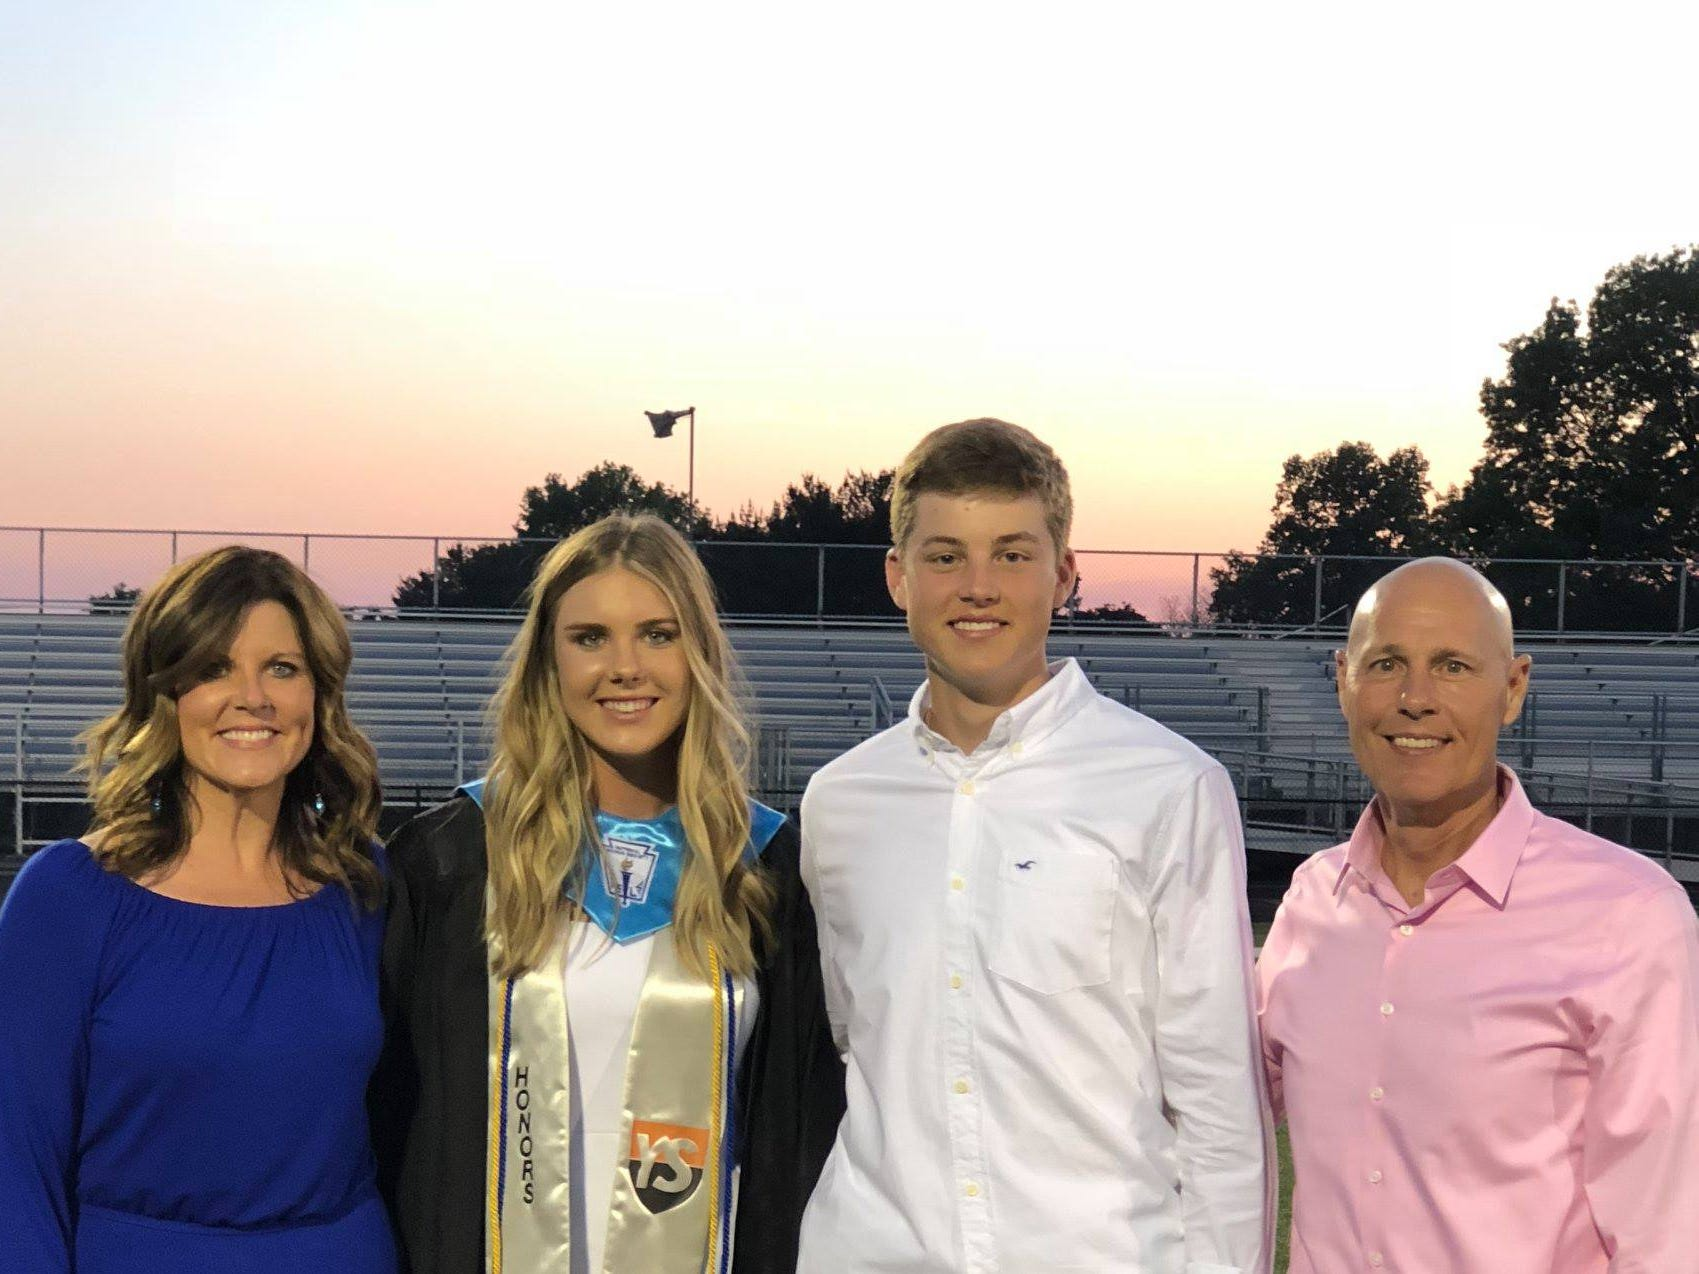 The York Suburban Education Foundation (YSEF) would like to acknowledge the outstanding contribution made to the organization by its outgoing President, Sarah Reinecker, and thank her for her leadership as president over the last four years. She is pictured with her familyÐ daughter Ali, son Maxwell and husband Scott. Submitted